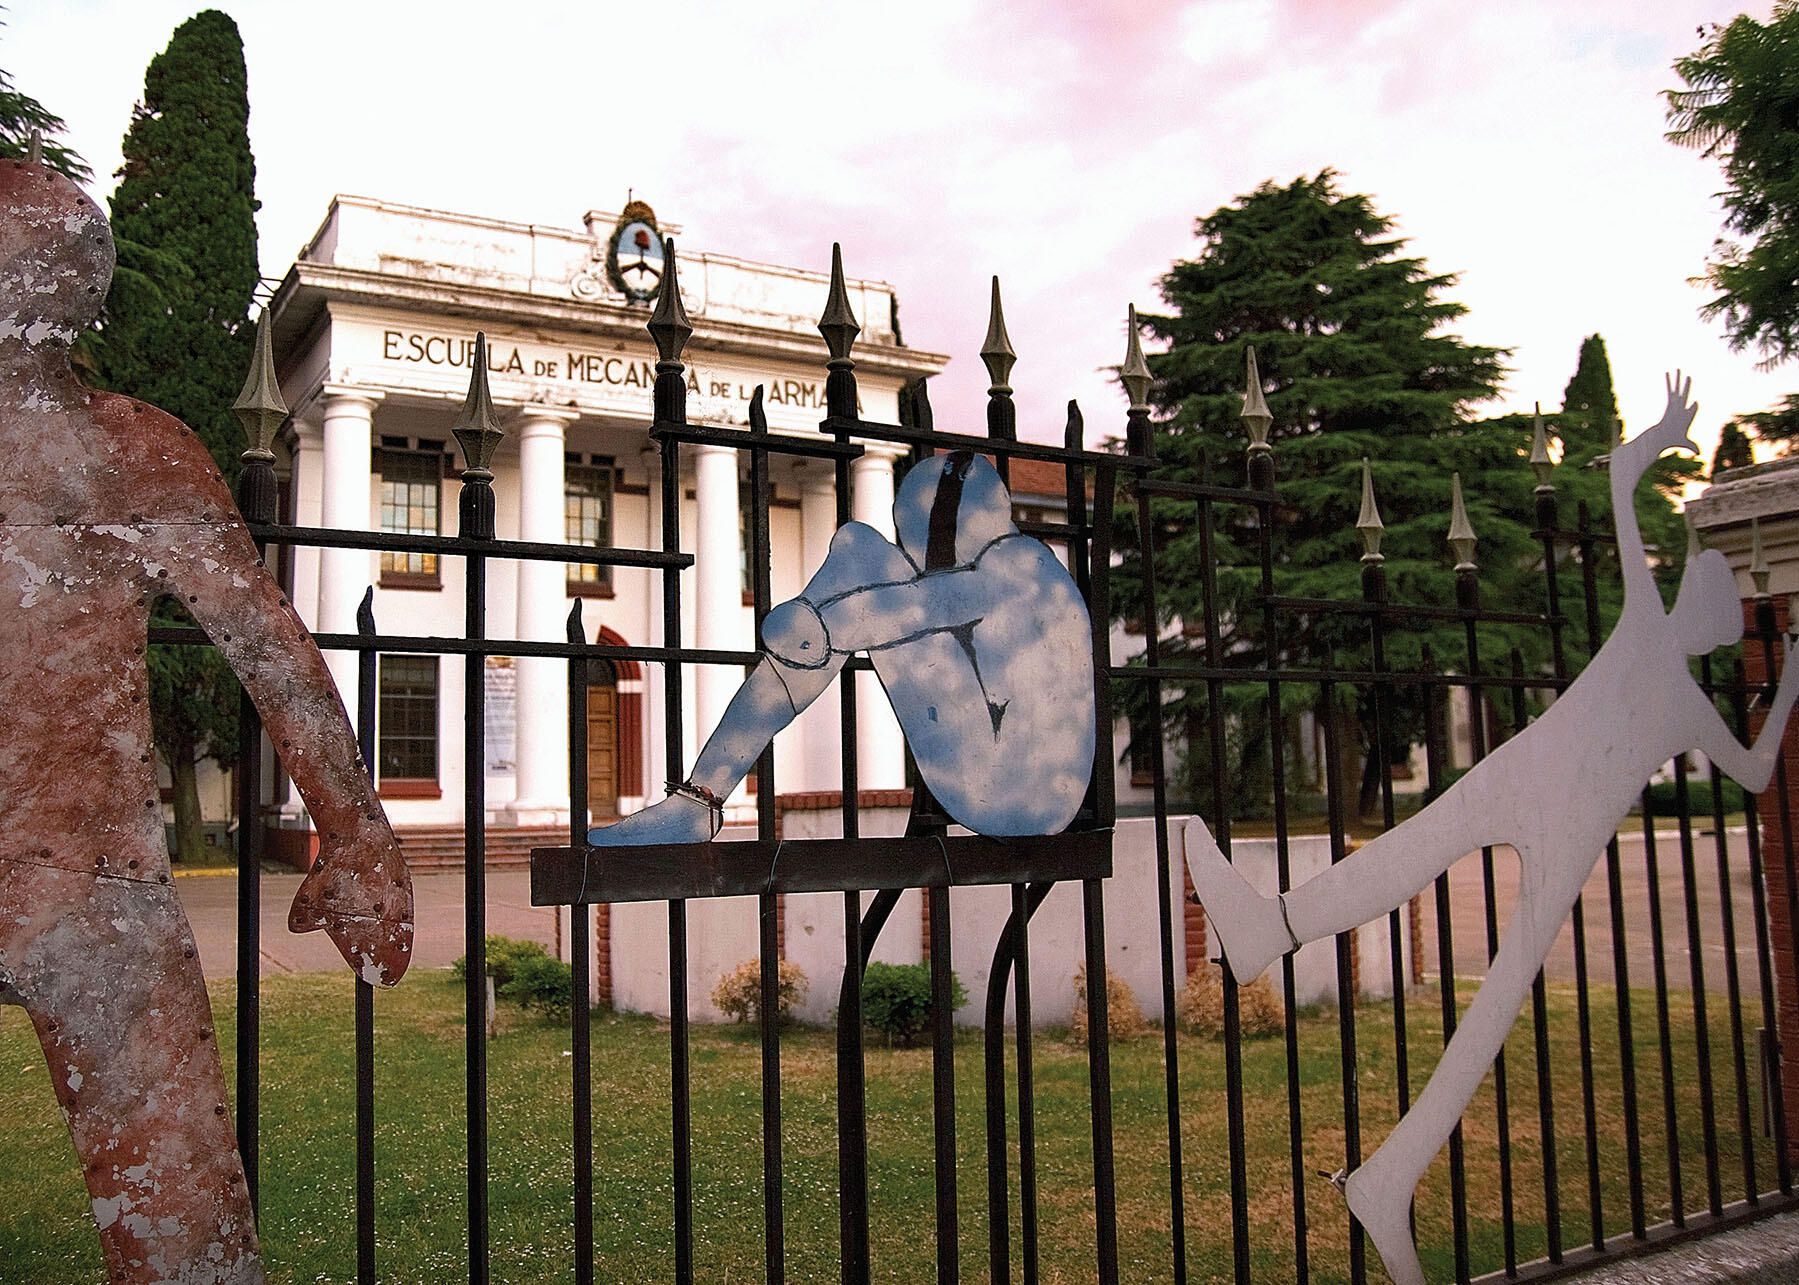 Metal figures welded to a fence form a memorial to torture victims in front of Argentina's Escuela de Mecánica de la Armada (ESMA). (Photo by David A. Wilbanks.)